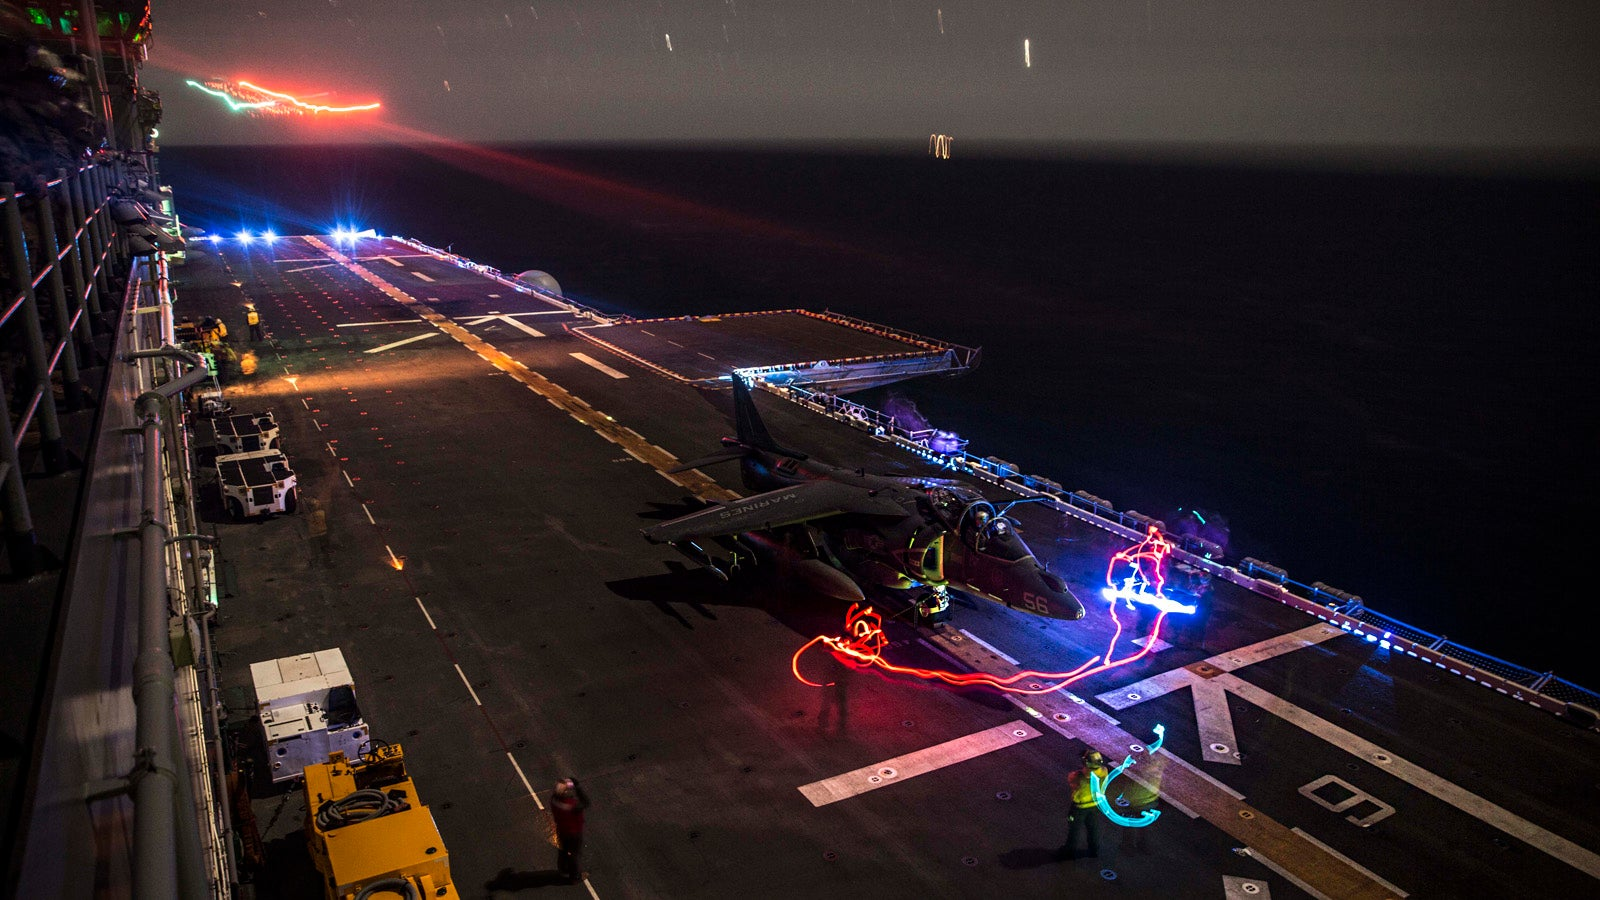 This Impressive Marine Corps Light Show Is Almost As Good As Any Frame From The Movie Tron.